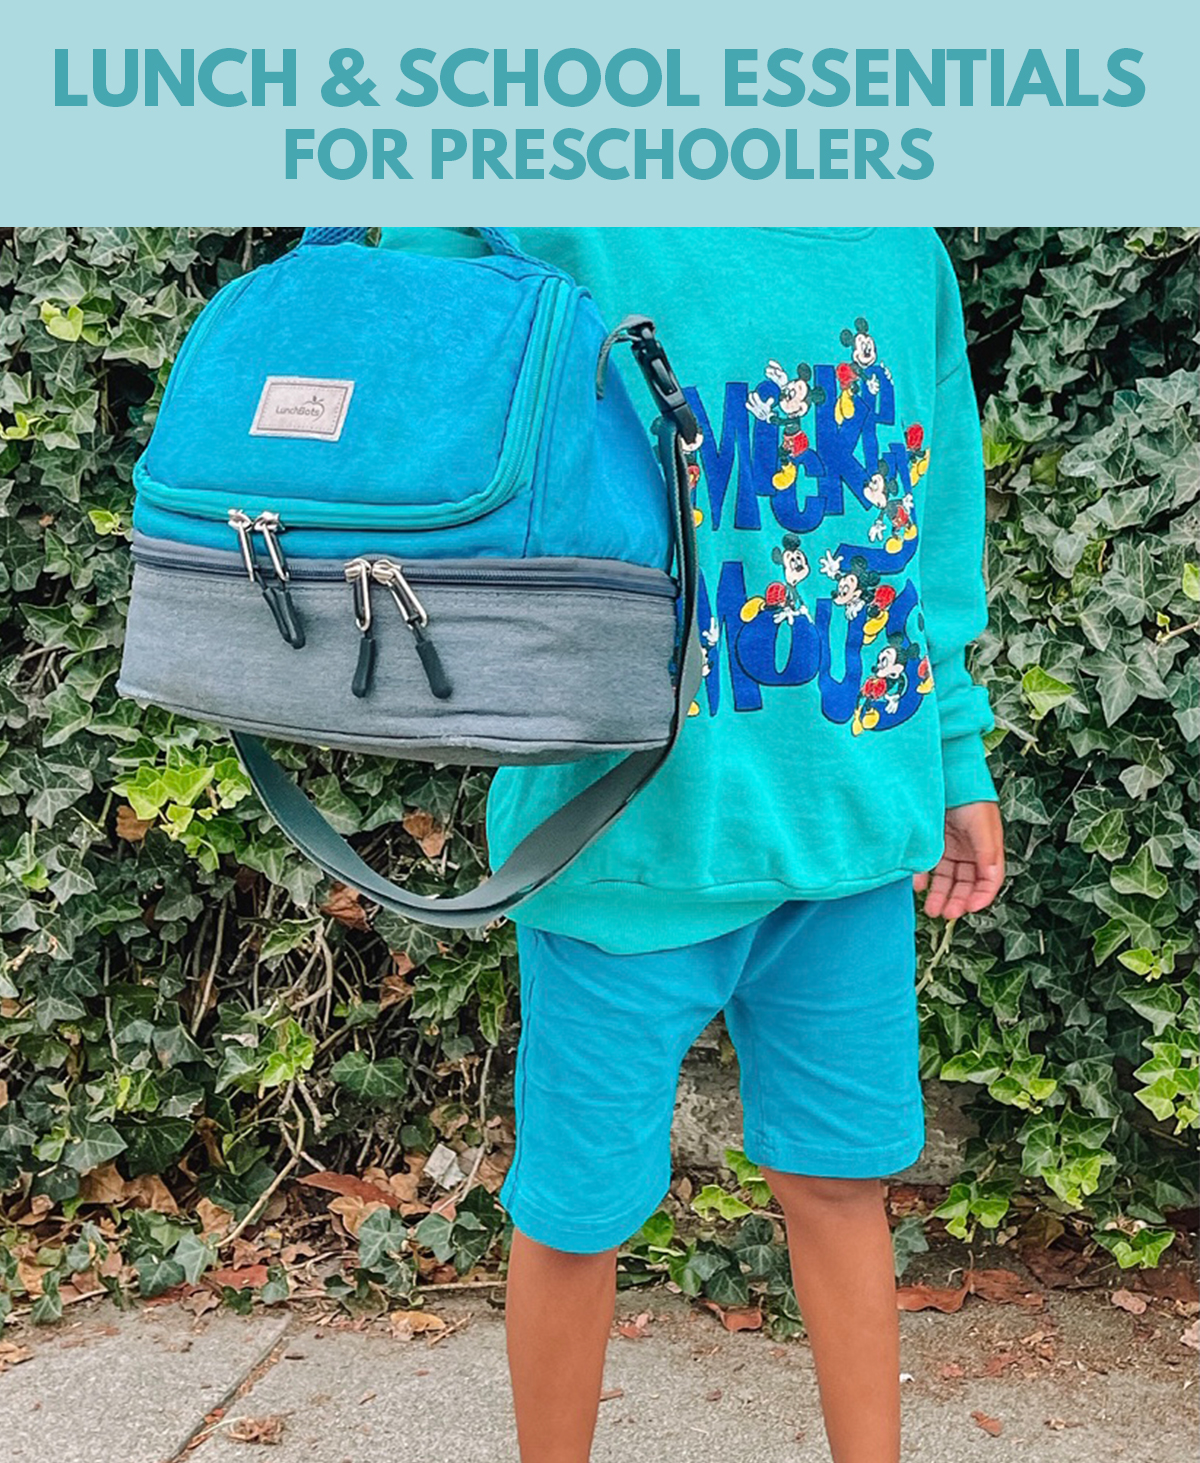 Our favorite lunch box, water bottle, school clothes, masks and more for our preschooler!